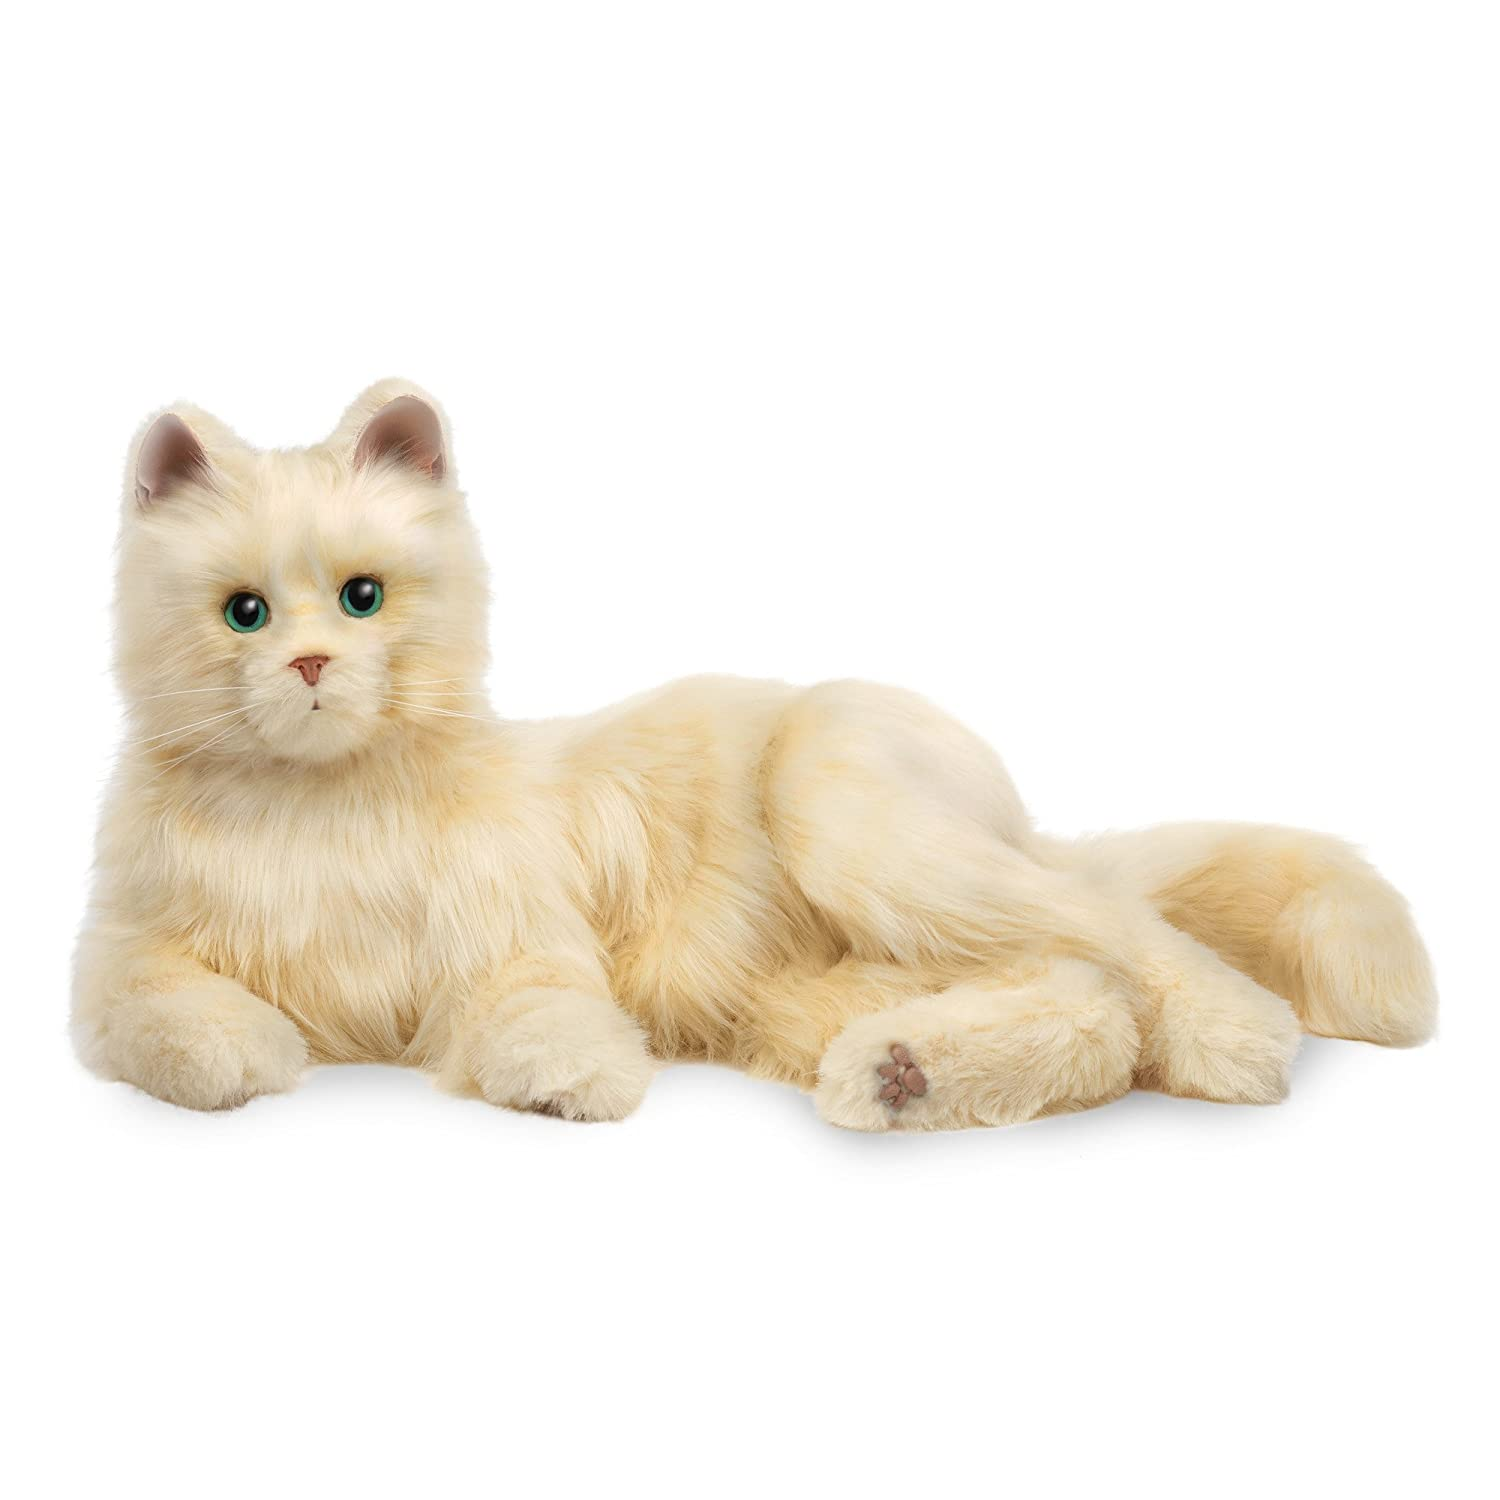 Amazon Joy For All Creamy White Cat Toys & Games